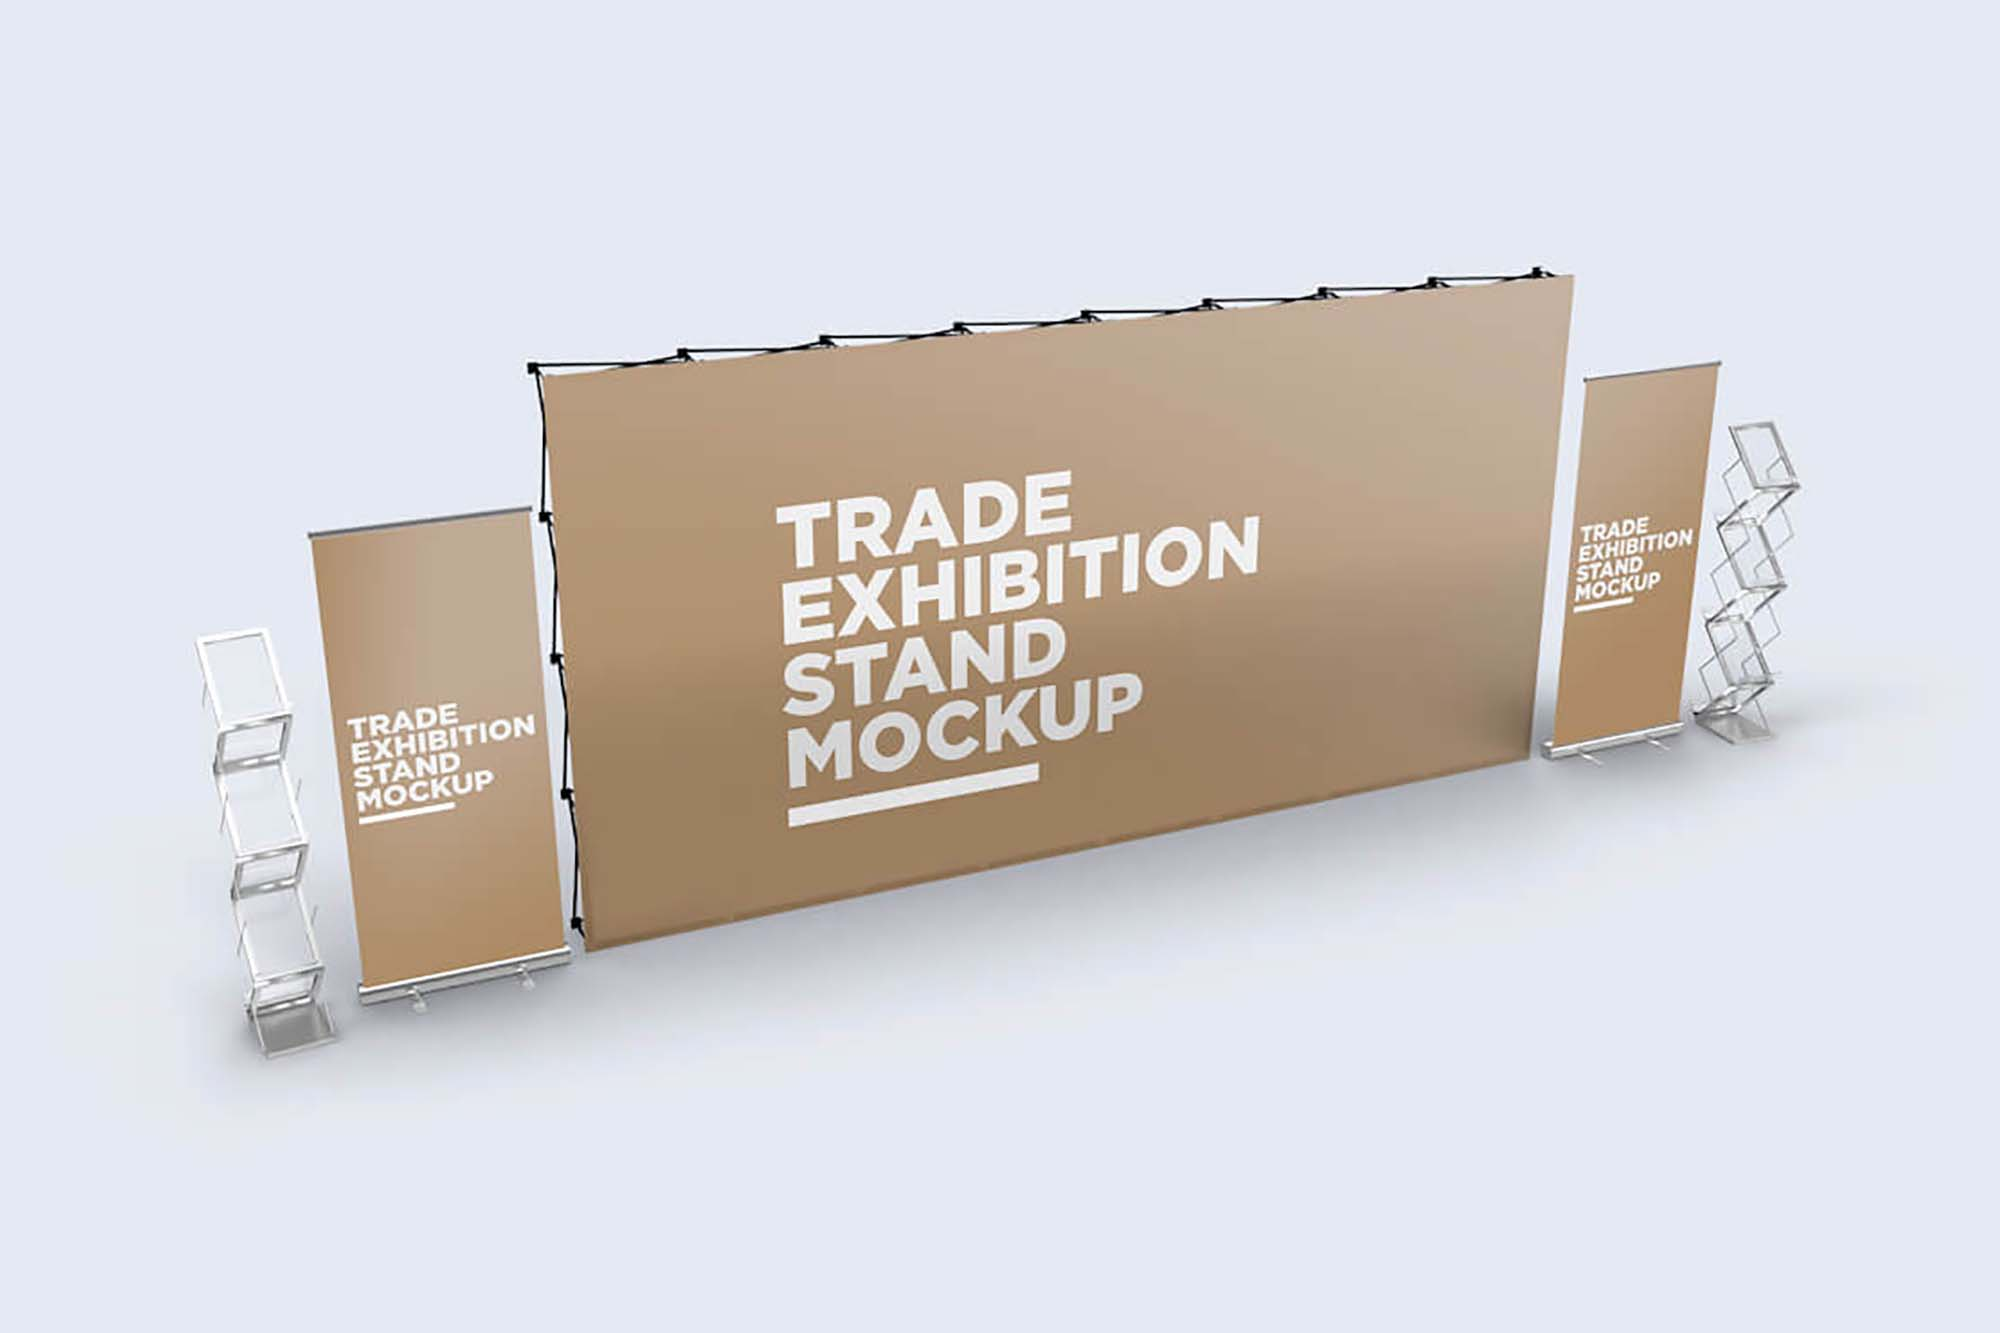 Trade Exhibition Stand Mockup 2